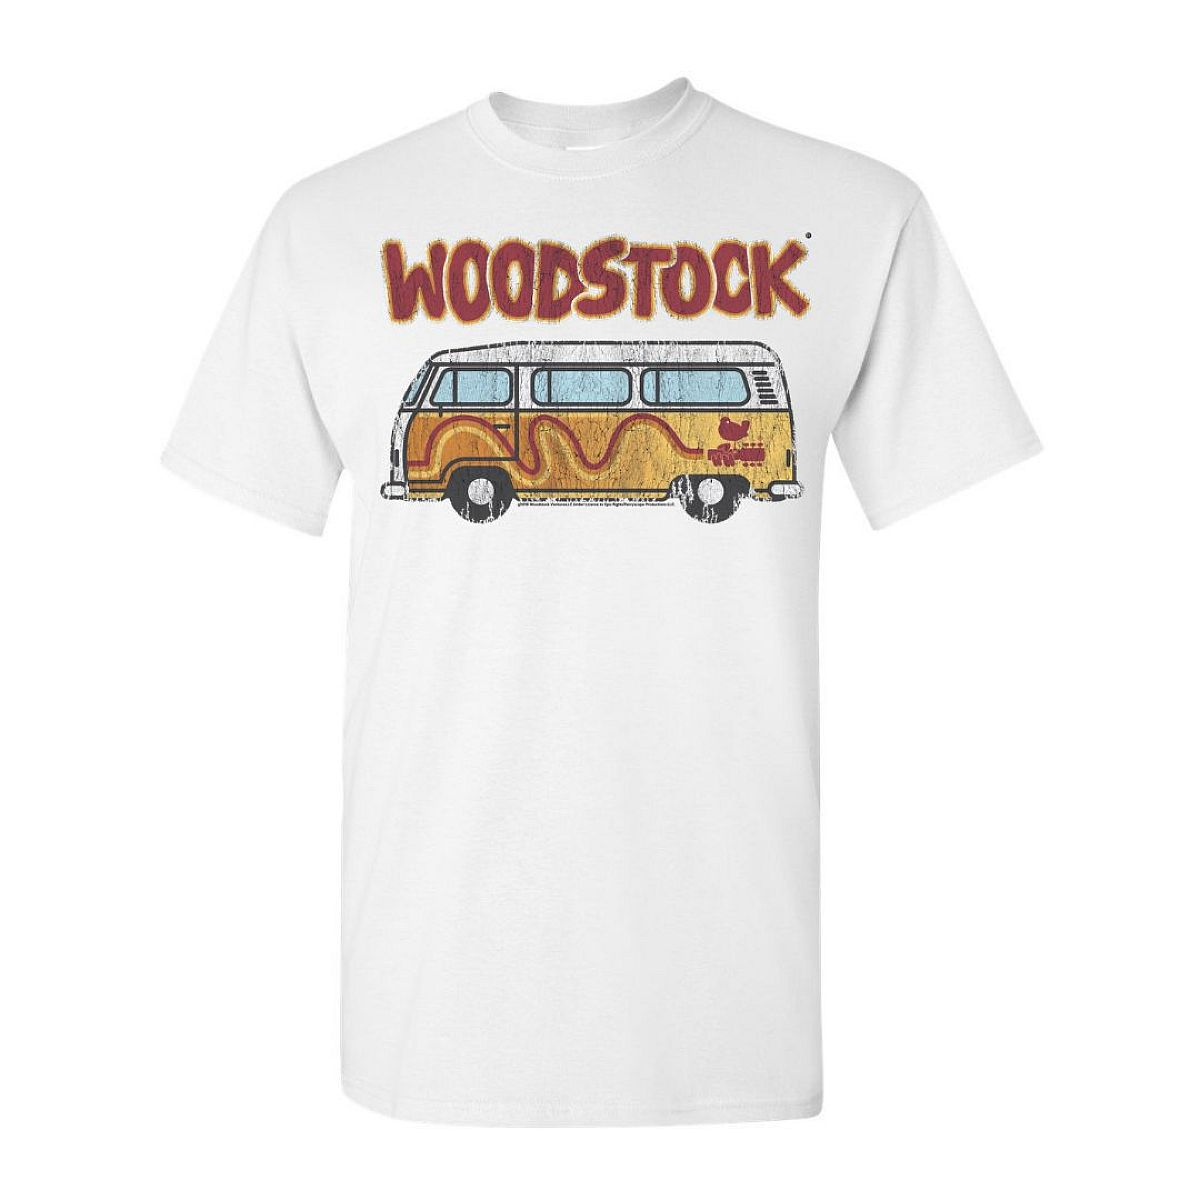 On The Bus T-Shirt